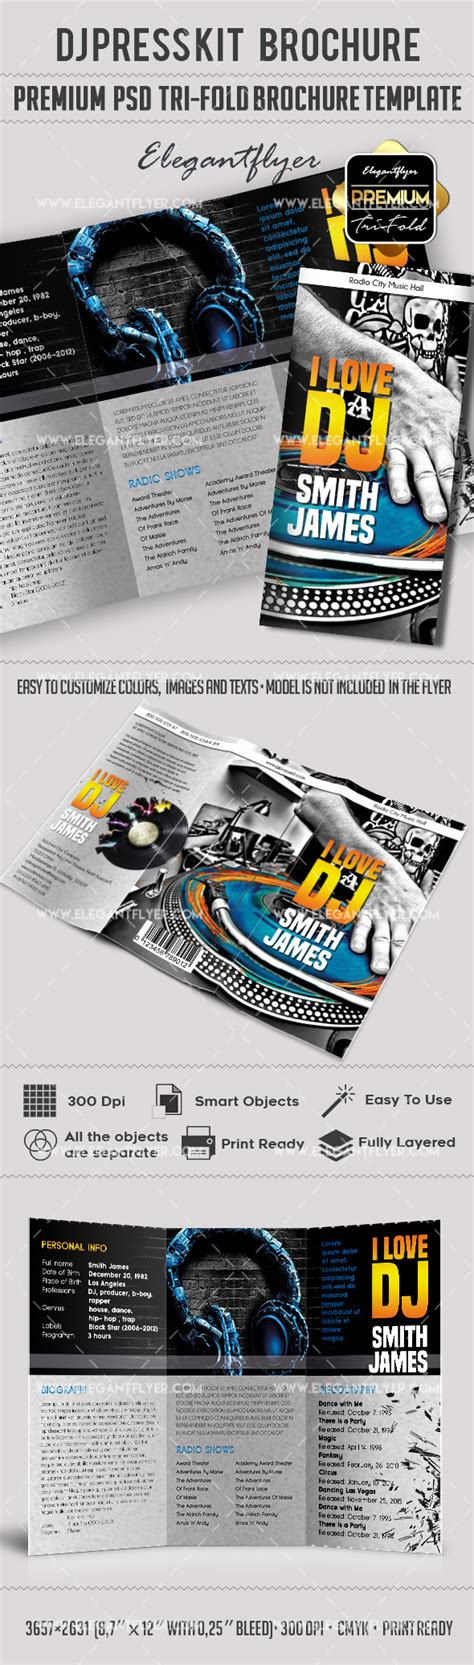 dj press kit template free brochure for dj press kit by elegantflyer